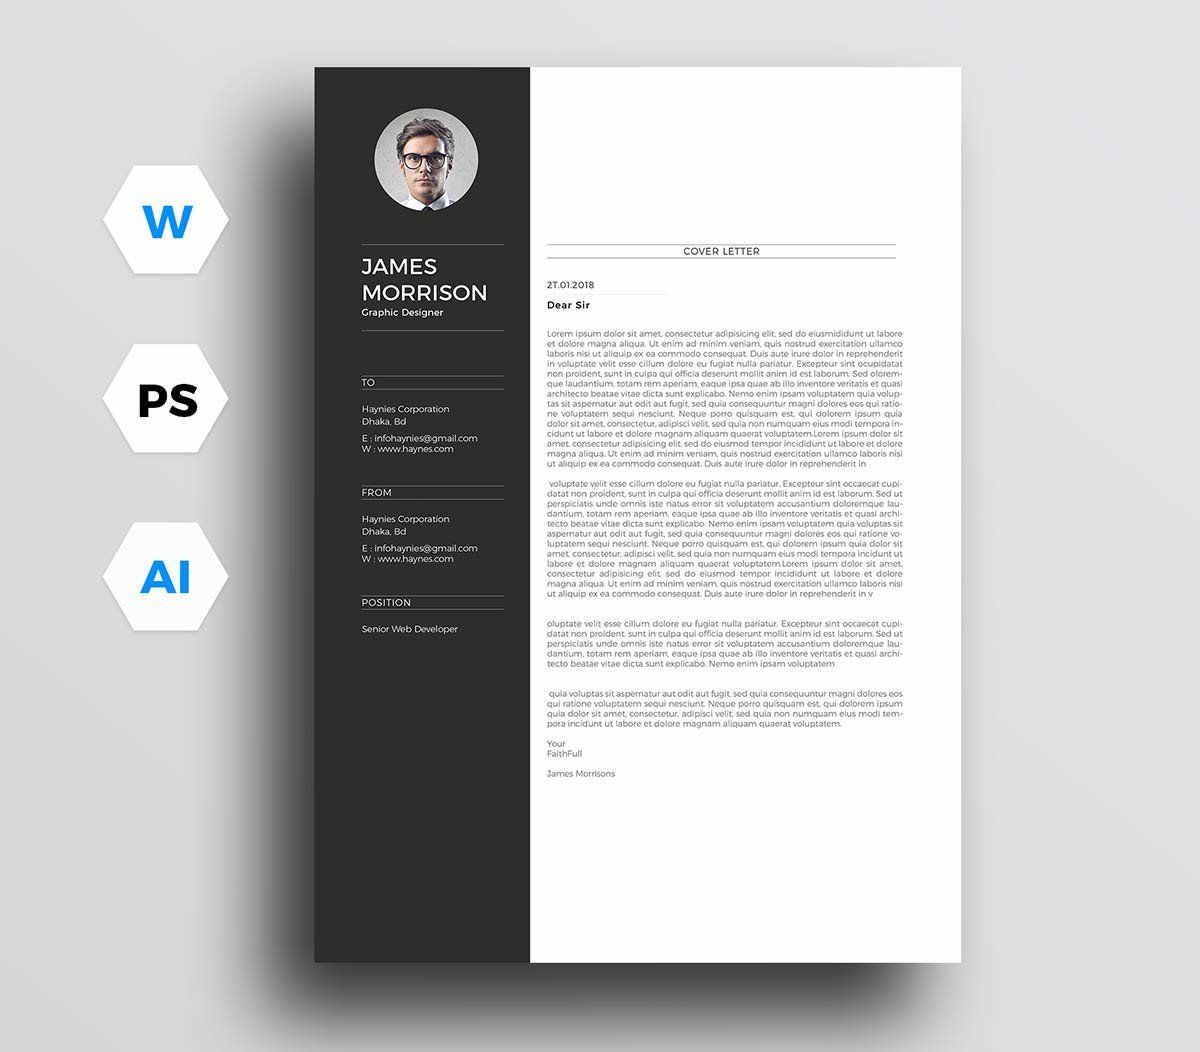 003 Outstanding Cover Letter Template Microsoft Word Inspiration  2007 FaxFull